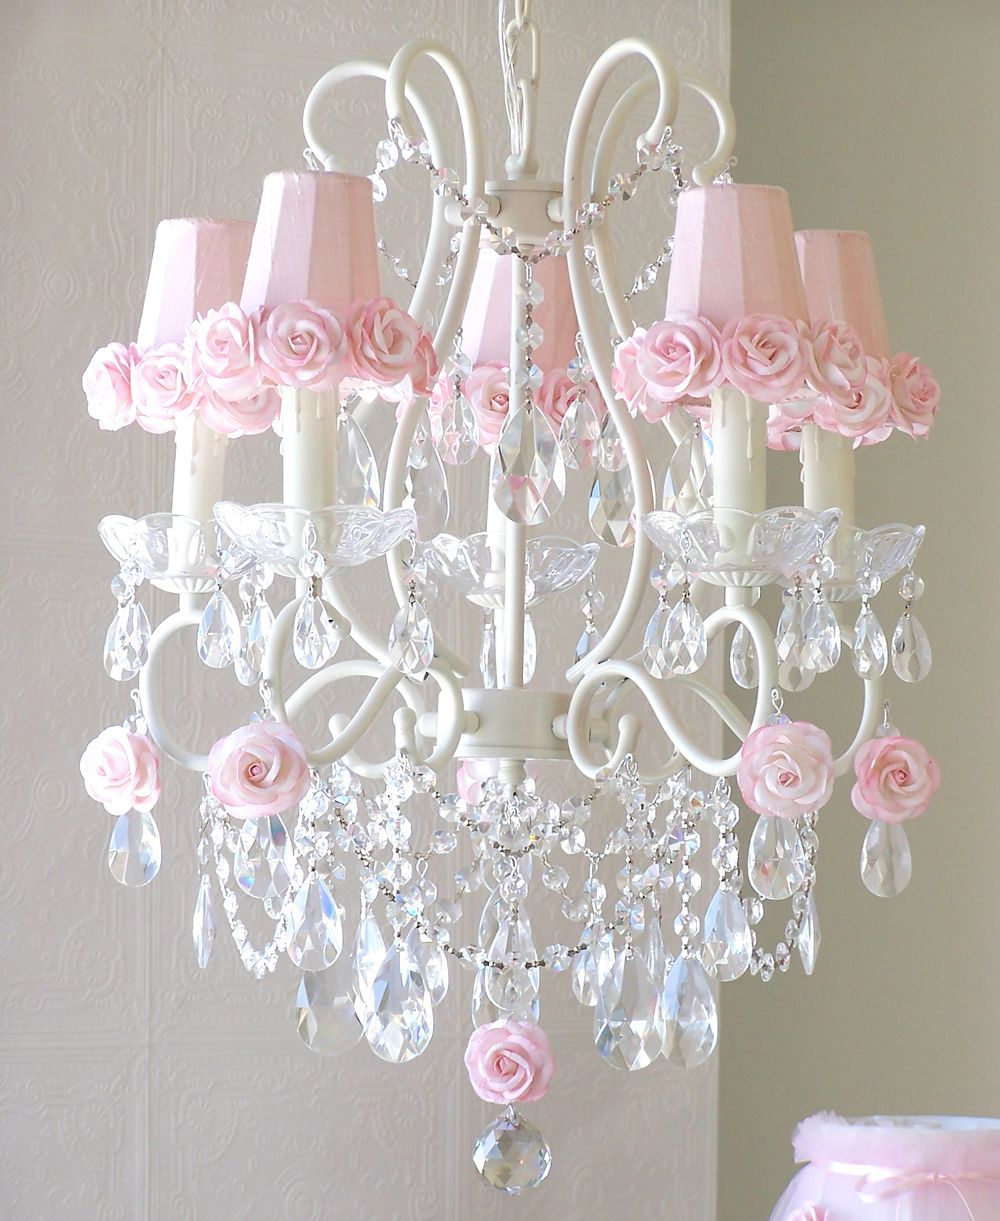 5 Light Antique White Chandelier with Pink Rose Shades